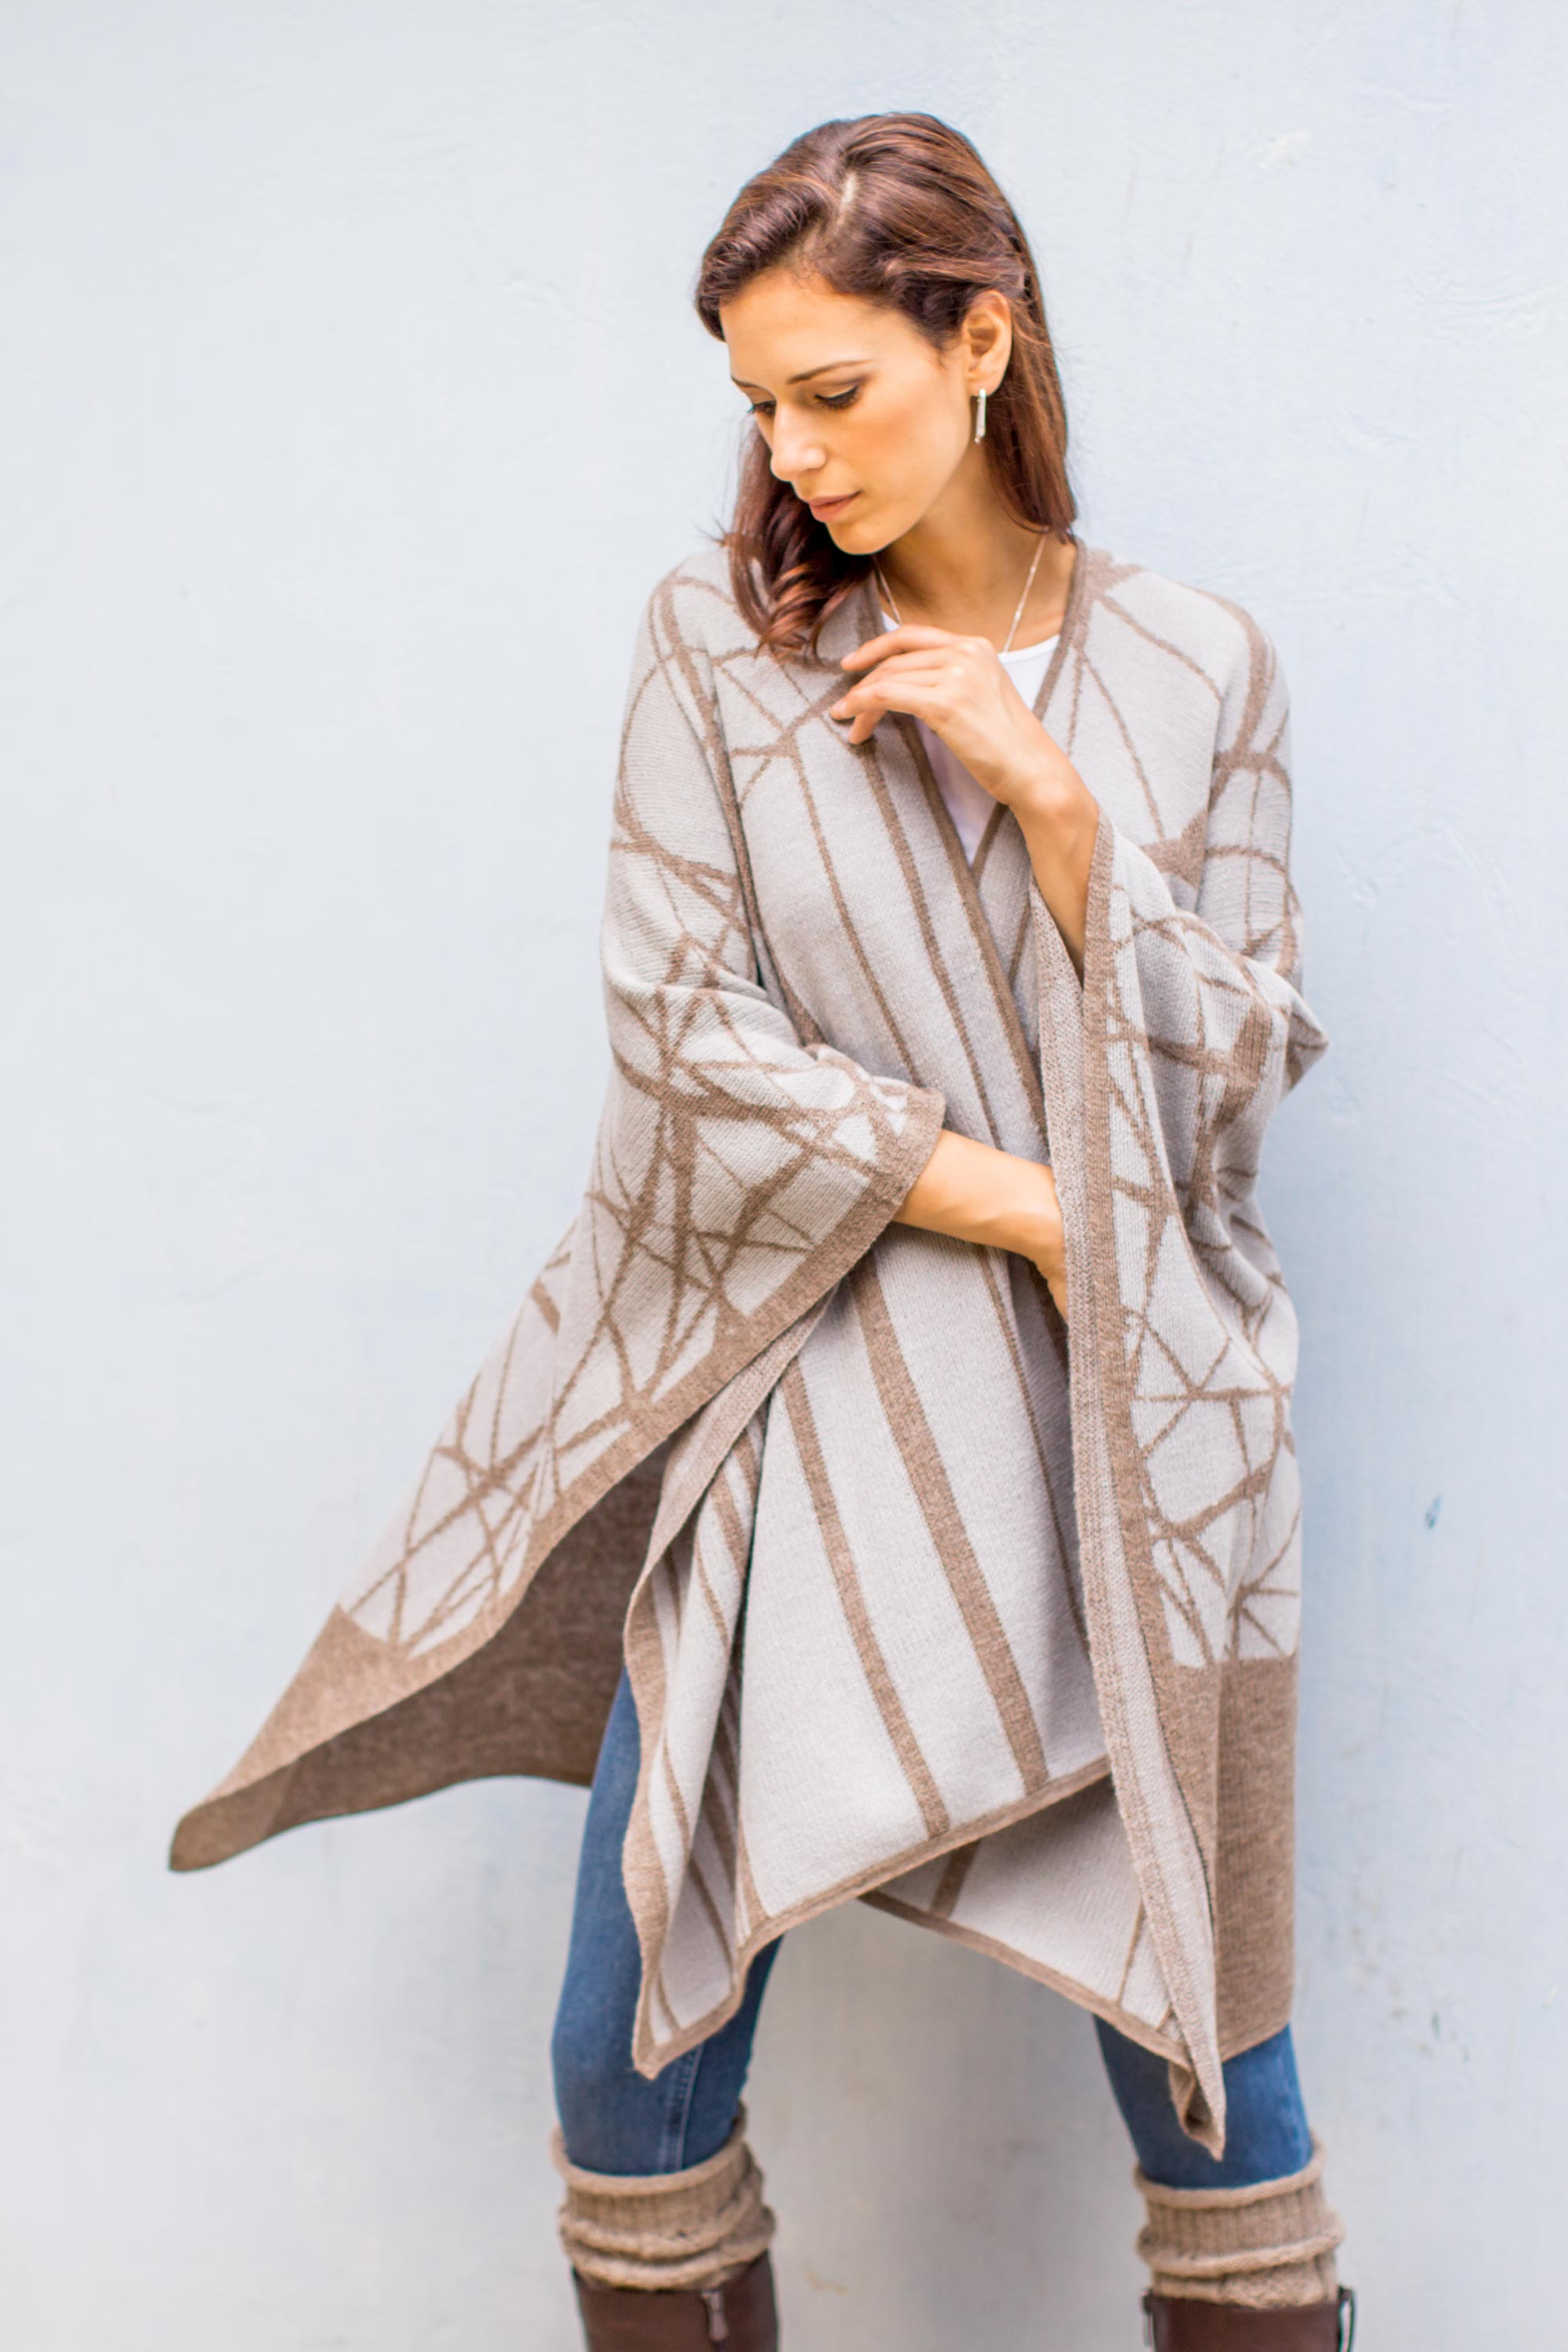 Eternal Tan Soft 100% Baby Alpaca Ruana in Tan on Grey from Peru Stylish & Practical Winter Accessories Look cool and stay warm Handmade art